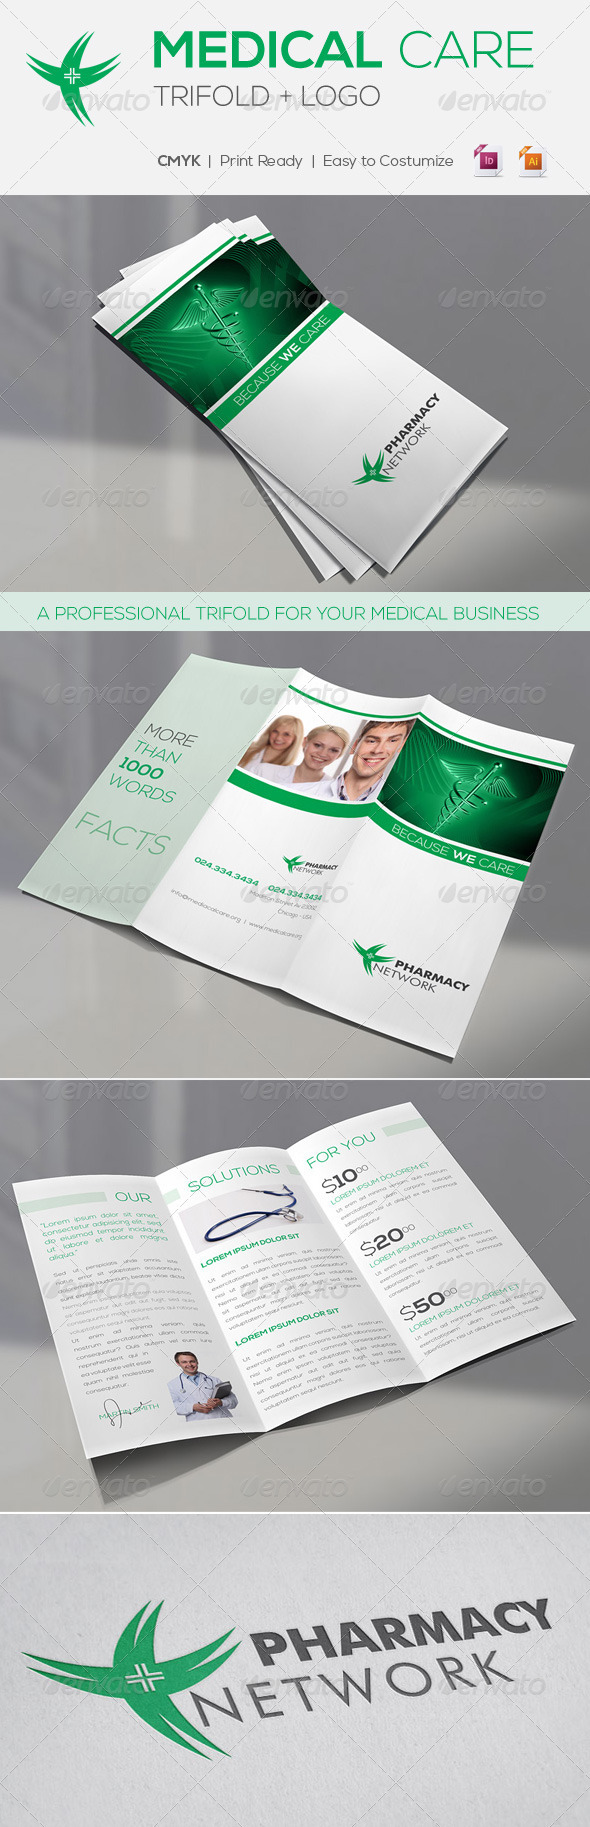 A4 Medical Care | Trifold + Logo - Brochures Print Templates